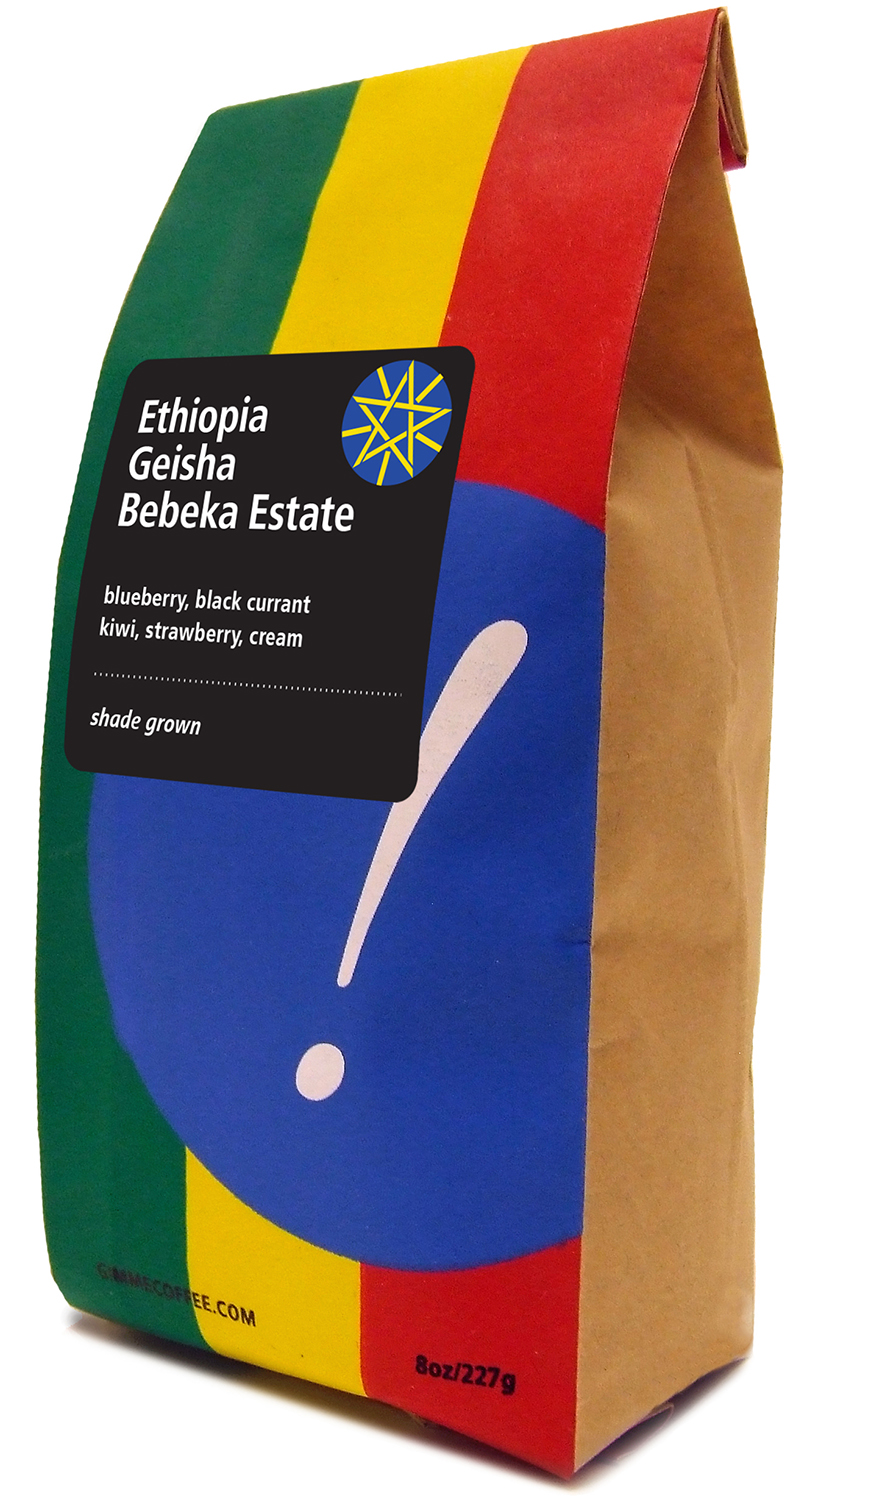 Ethiopia Geisha Bebeka Estate    6c. Screen Print    Printed by Kaleb Hunkele    Designed by Eva Havle